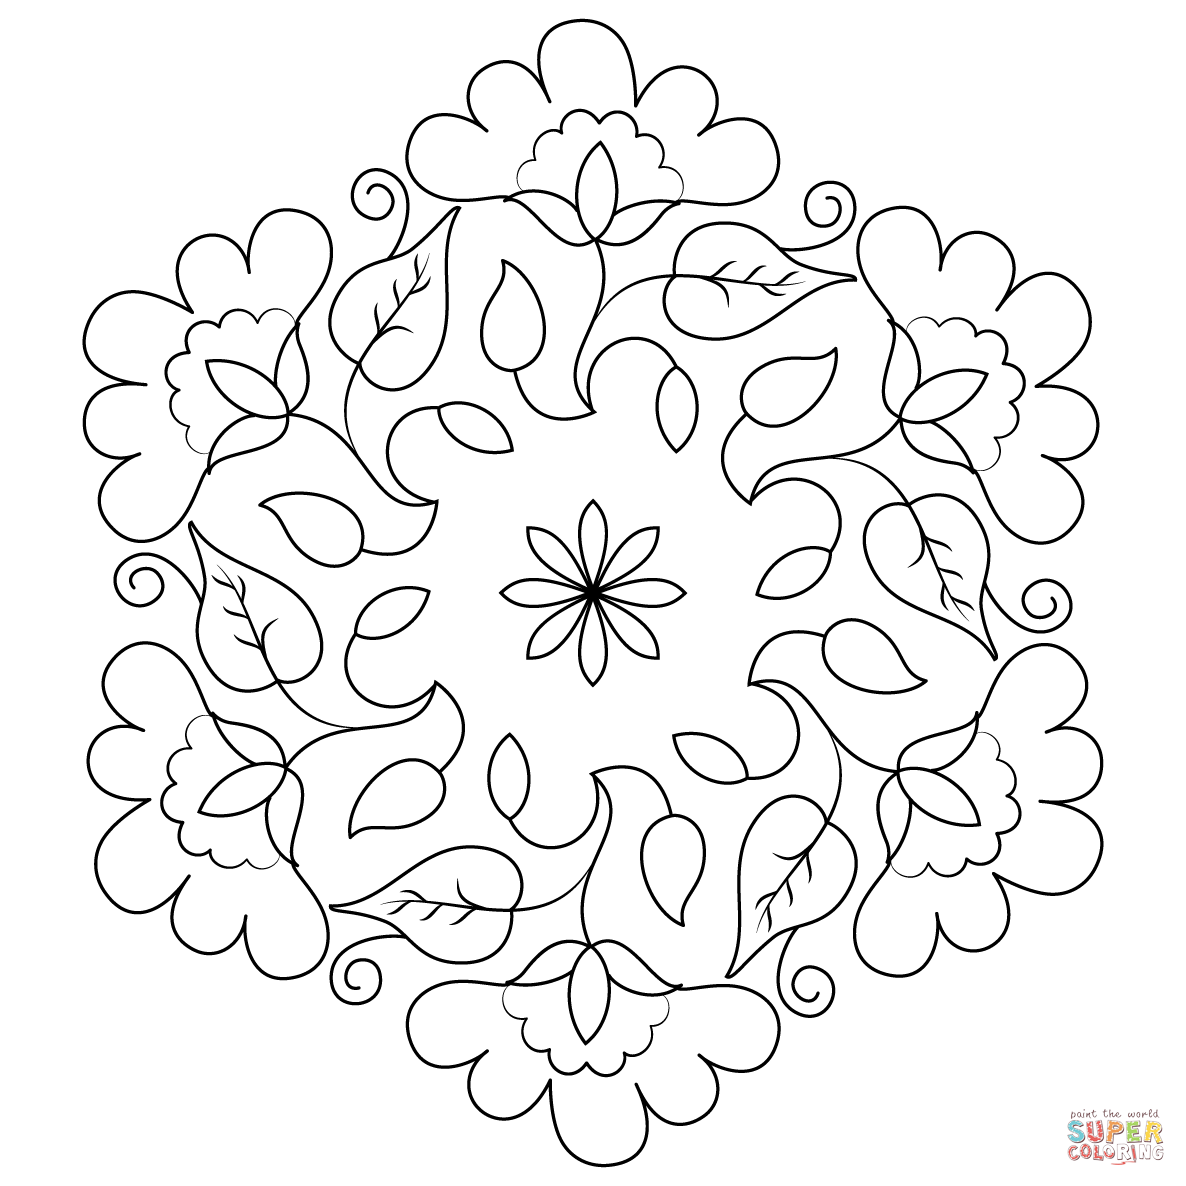 Flower Buds Kolam Coloring Page